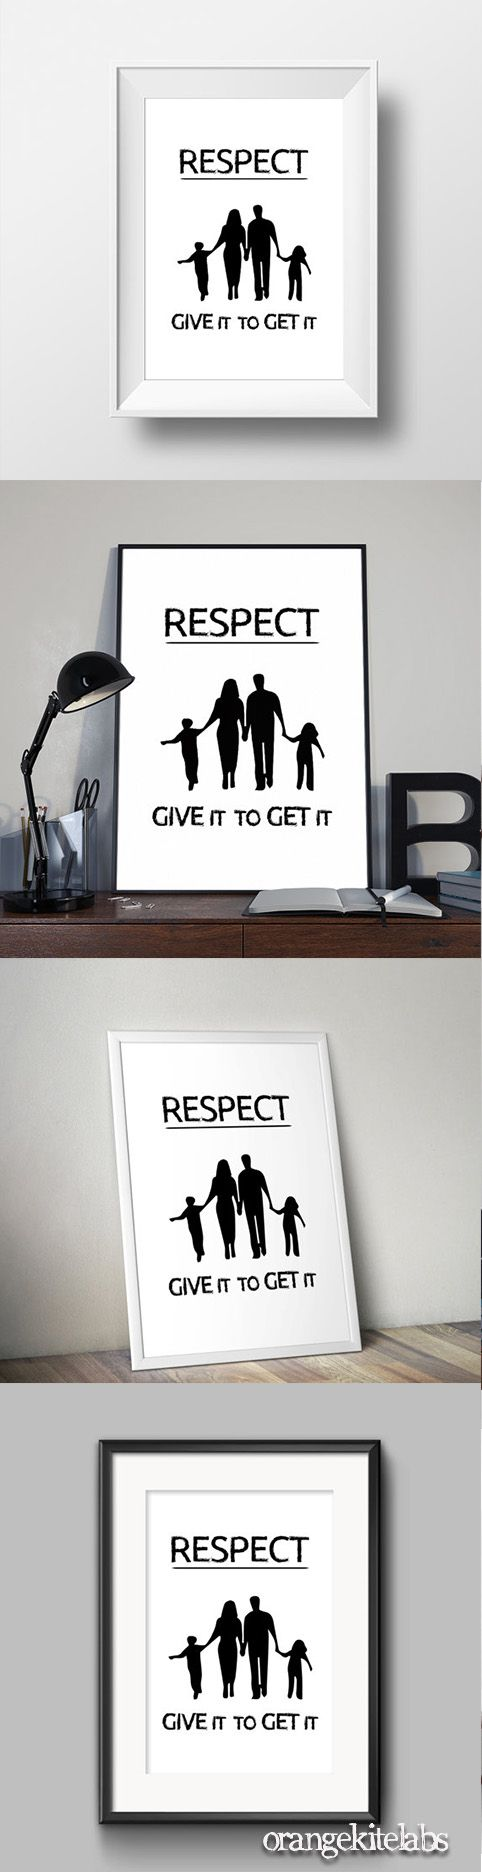 respect quote poster, #wall_art_decor #room_decor #Black_and_white_art #printable_quote #digital_print #respect_quote